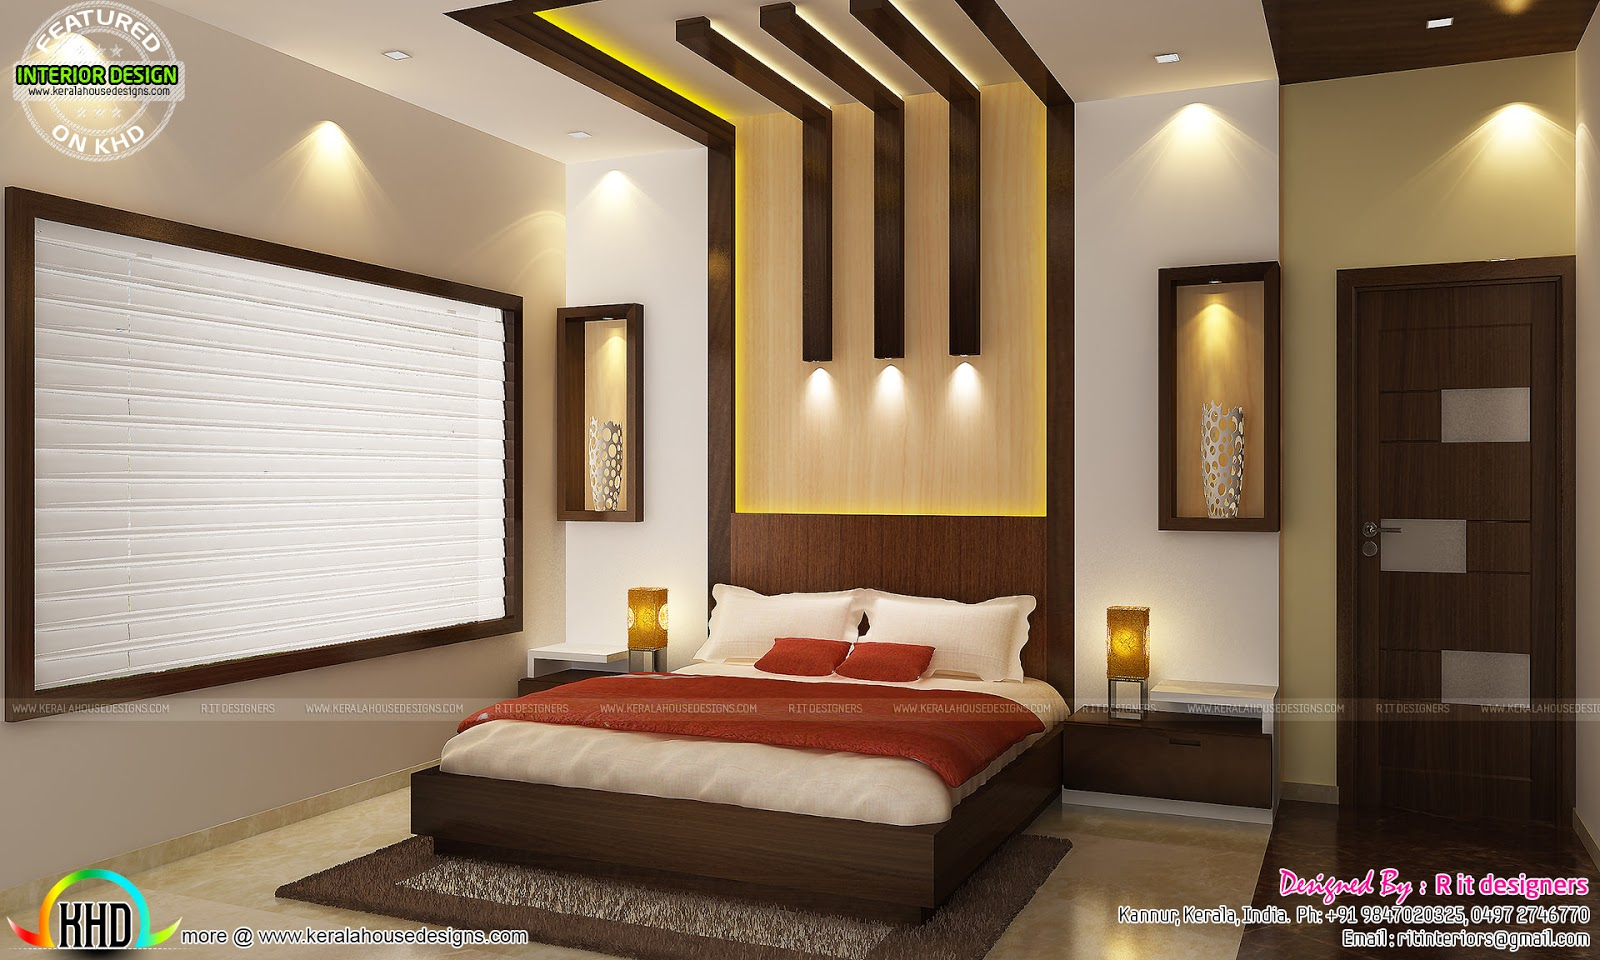 Kitchen living bedroom dining interior decor kerala 2 bedroom interior design